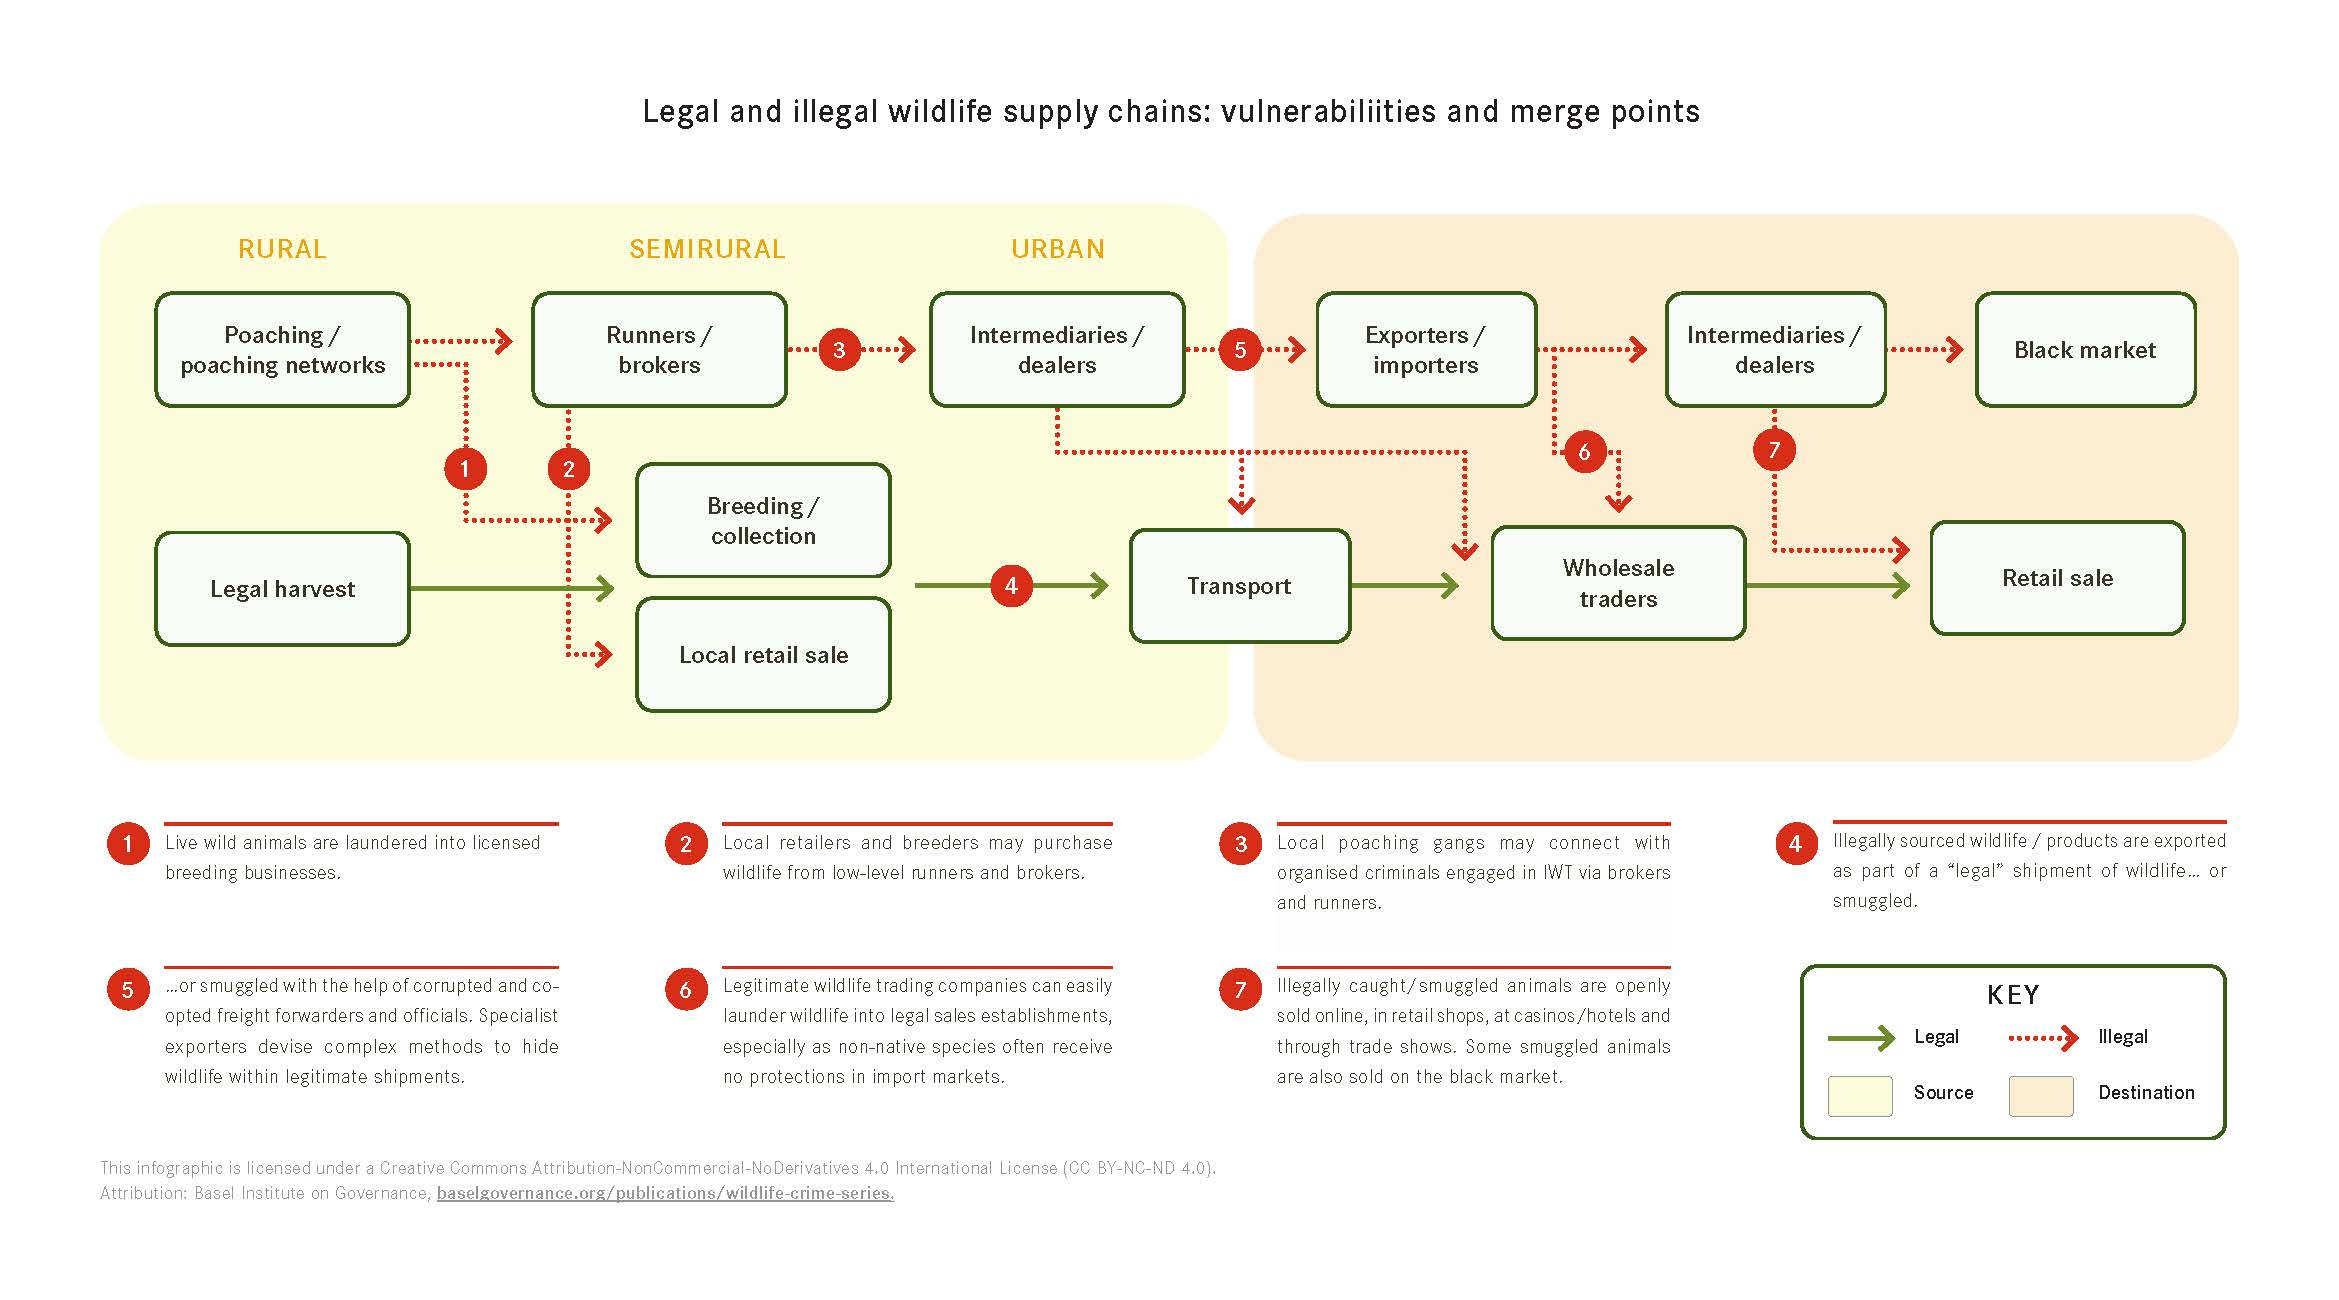 Infographic displaying the merging of legal and illegal wildlife supply chains